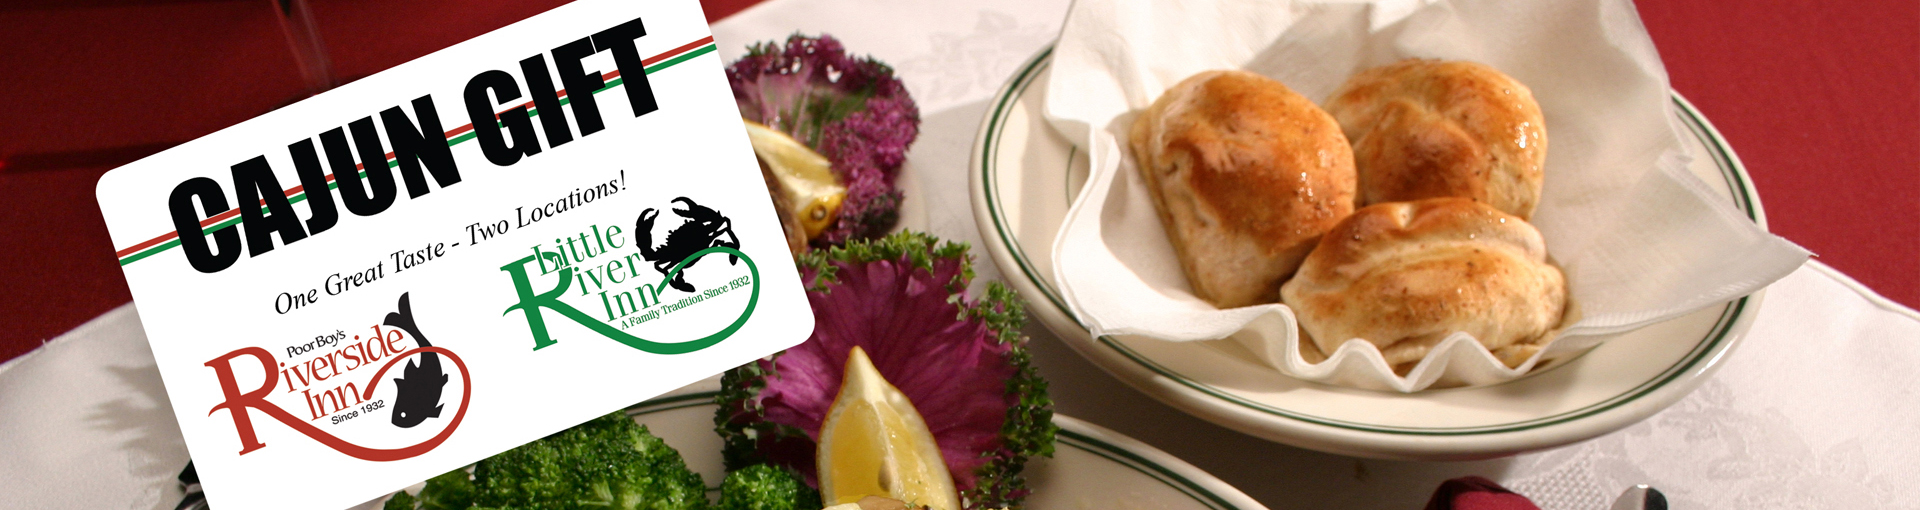 Mail Gift Cards - Seafood Image